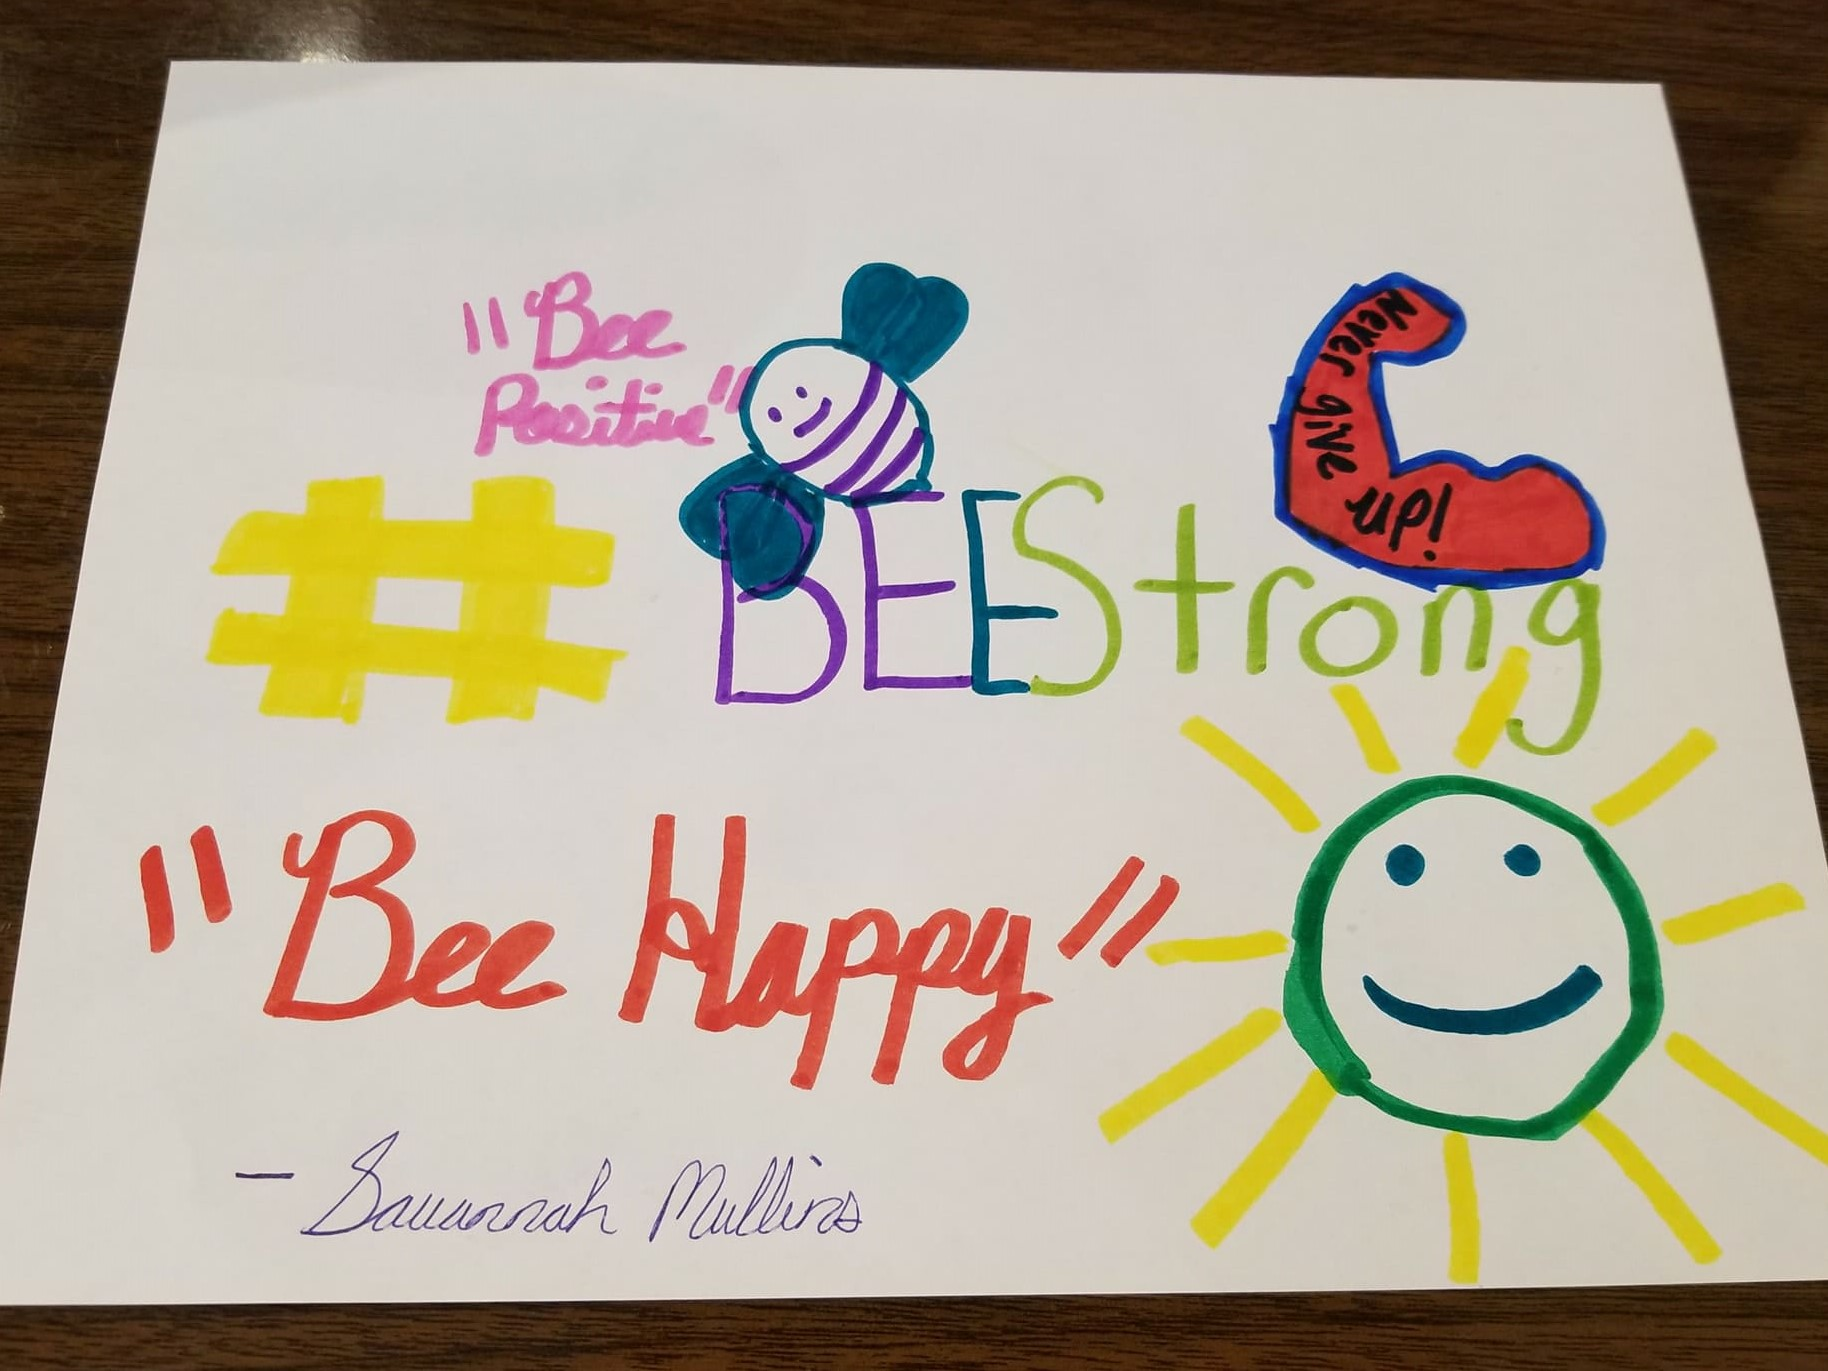 #BeeStrong Campaign - Savannah Mullins /  Youth Advisory Board Chair